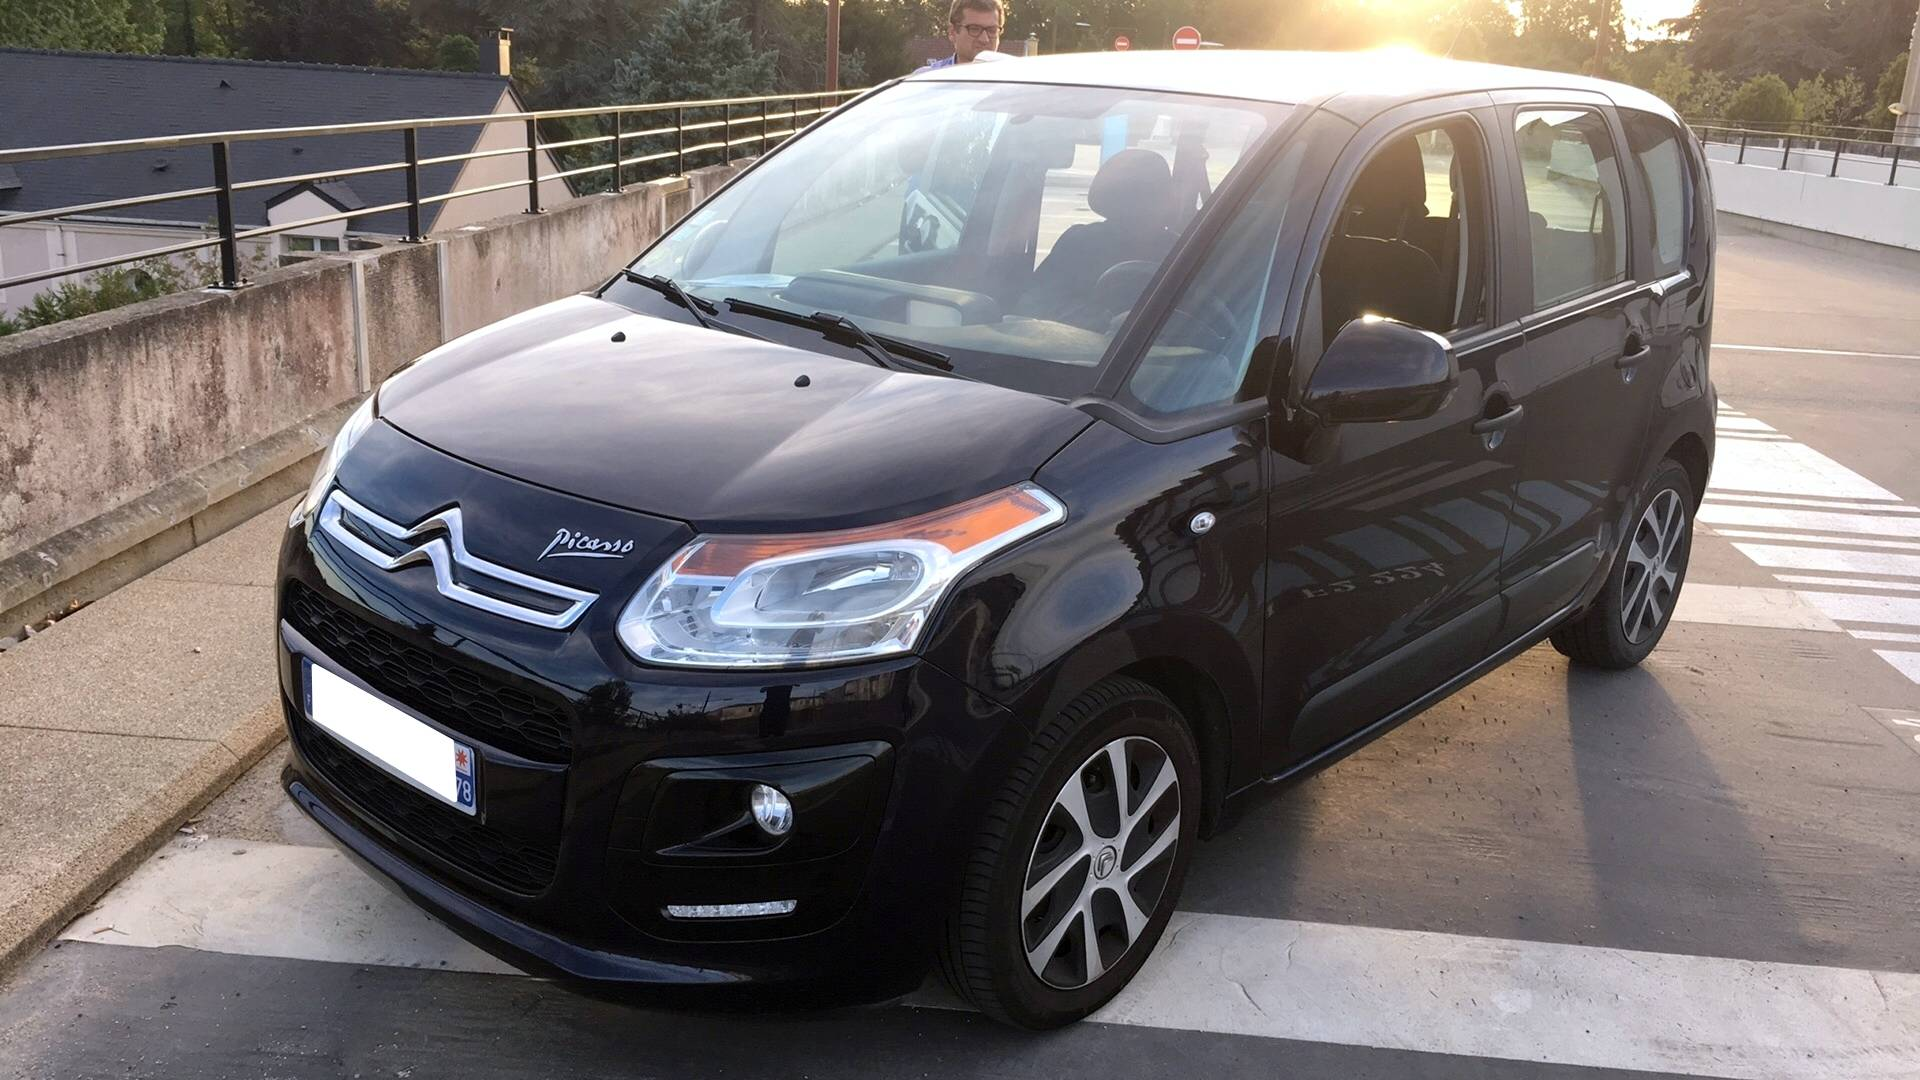 citroen c3 picasso d 39 occasion 1 6 hdi 90 confort le chesnay carizy. Black Bedroom Furniture Sets. Home Design Ideas